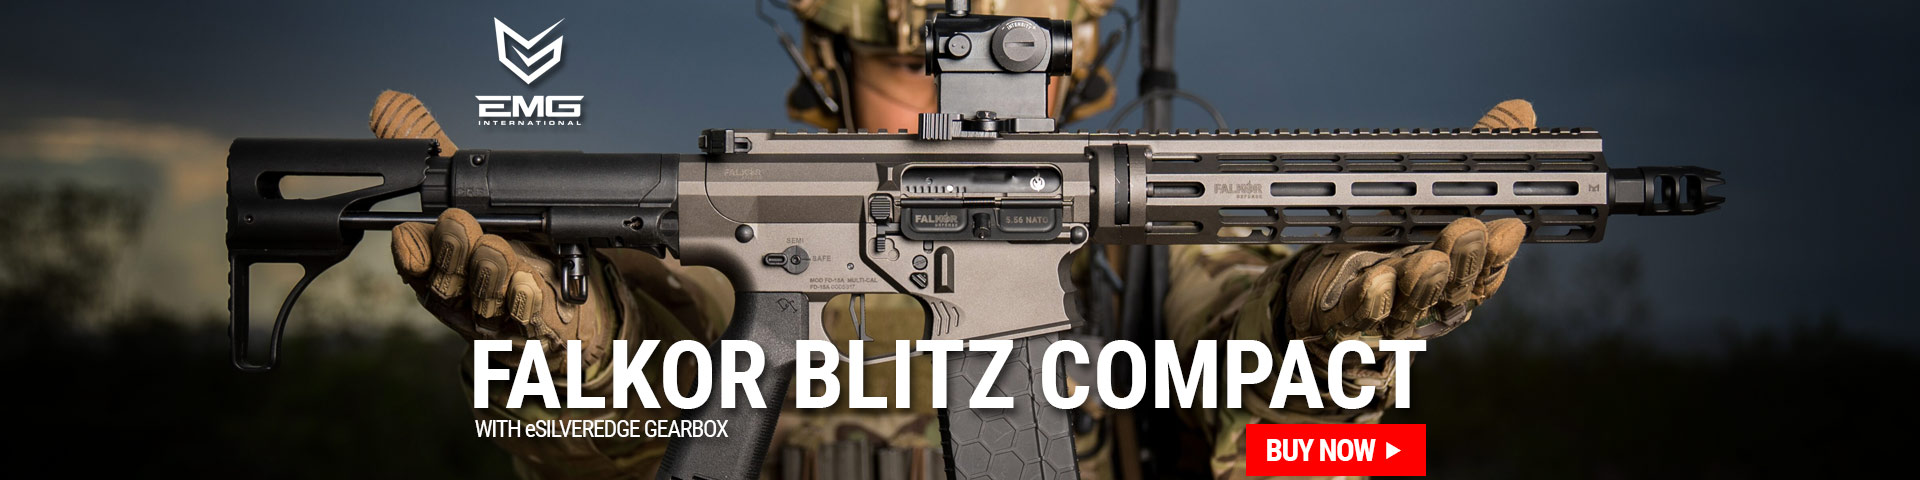 Featured: Falkor Blitz Compact